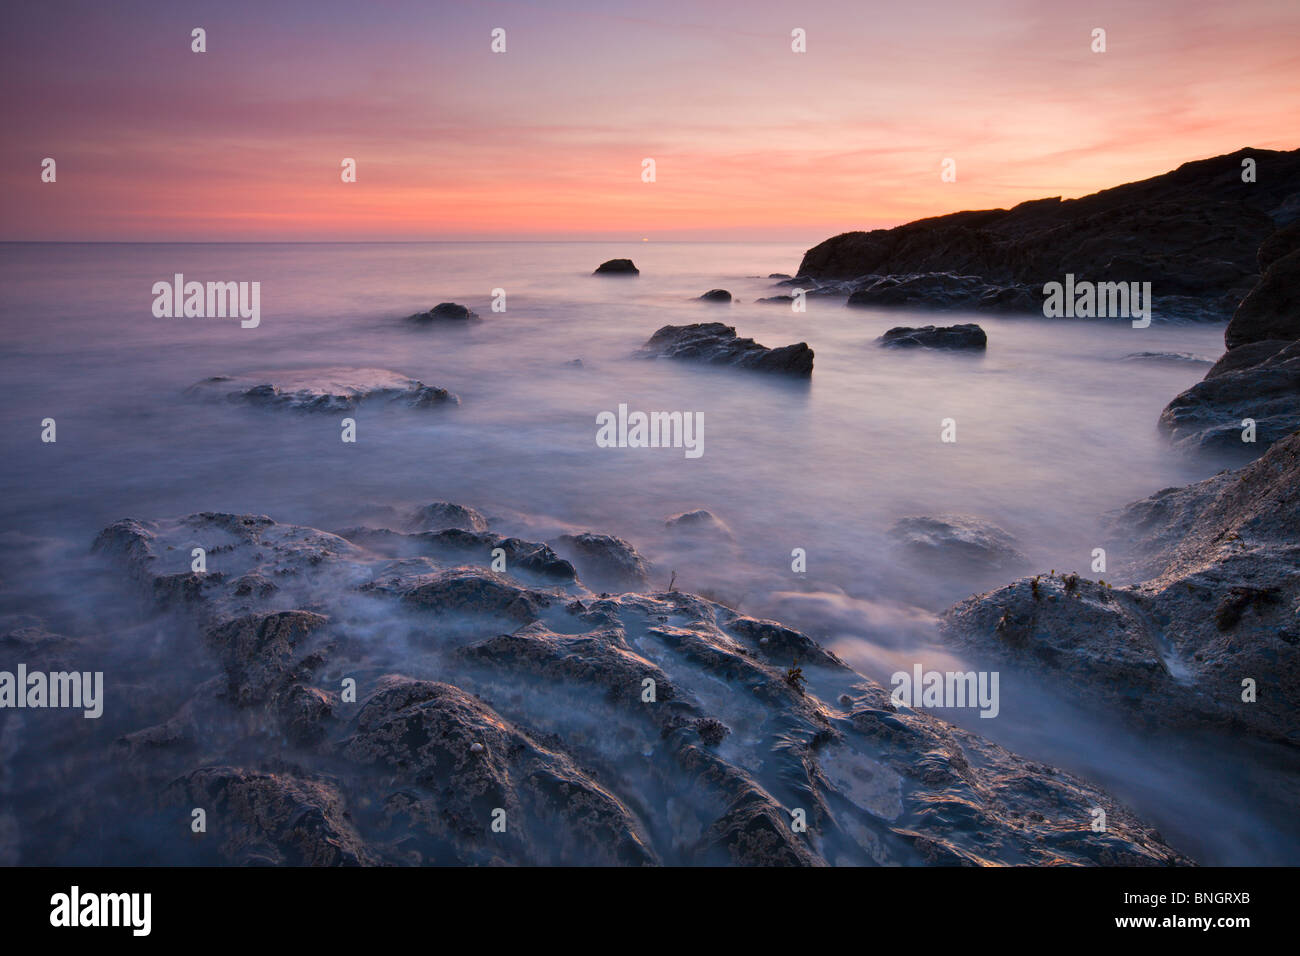 Sunset over the rocky shore of Church Cove, Near Mullion, The Lizard, Cornwall. Spring (April) 2010. - Stock Image